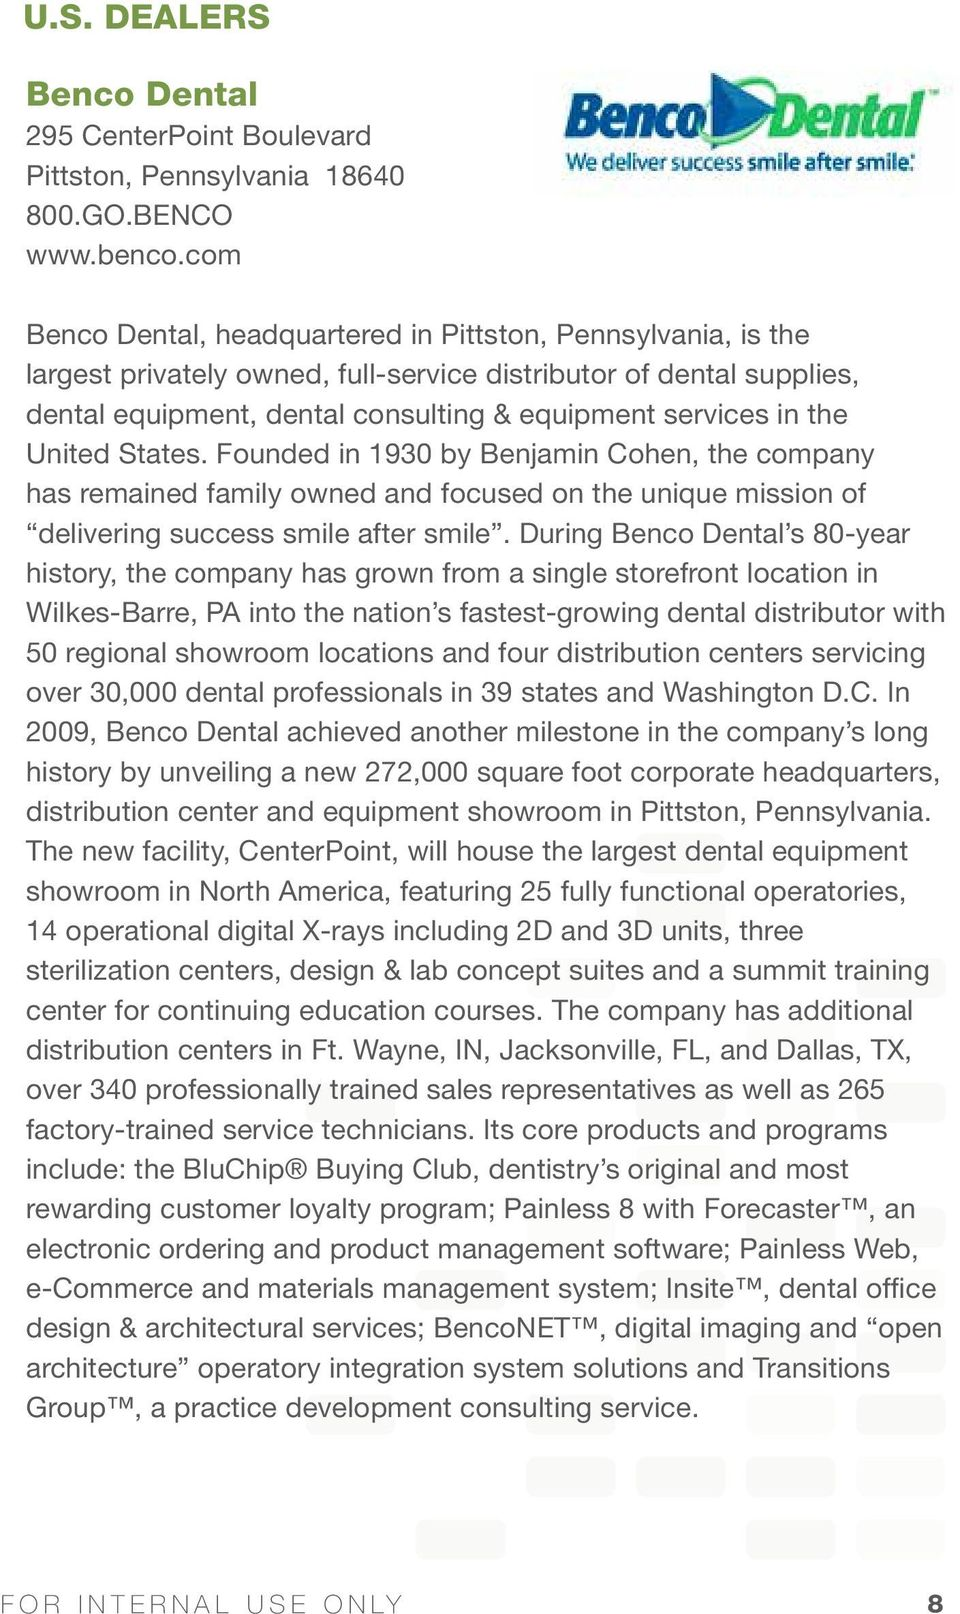 Kerr authorized dealer brochure pdf united states founded in 1930 by benjamin cohen the company has remained family owned fandeluxe Choice Image